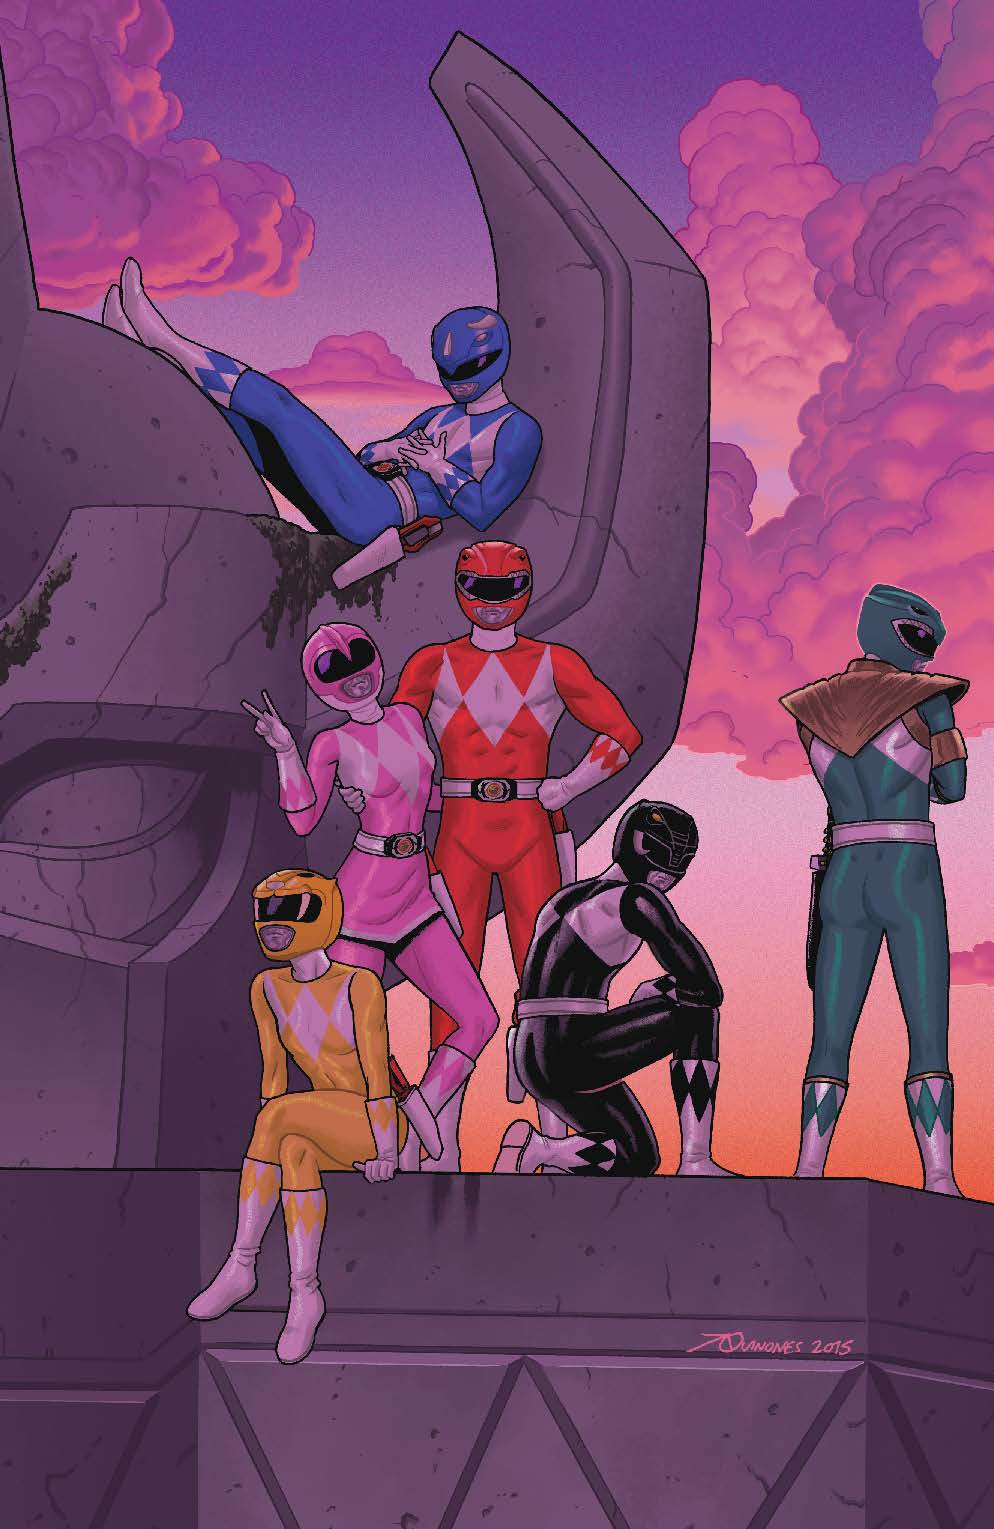 Mighty Morphin Power Rangers #2 Preview